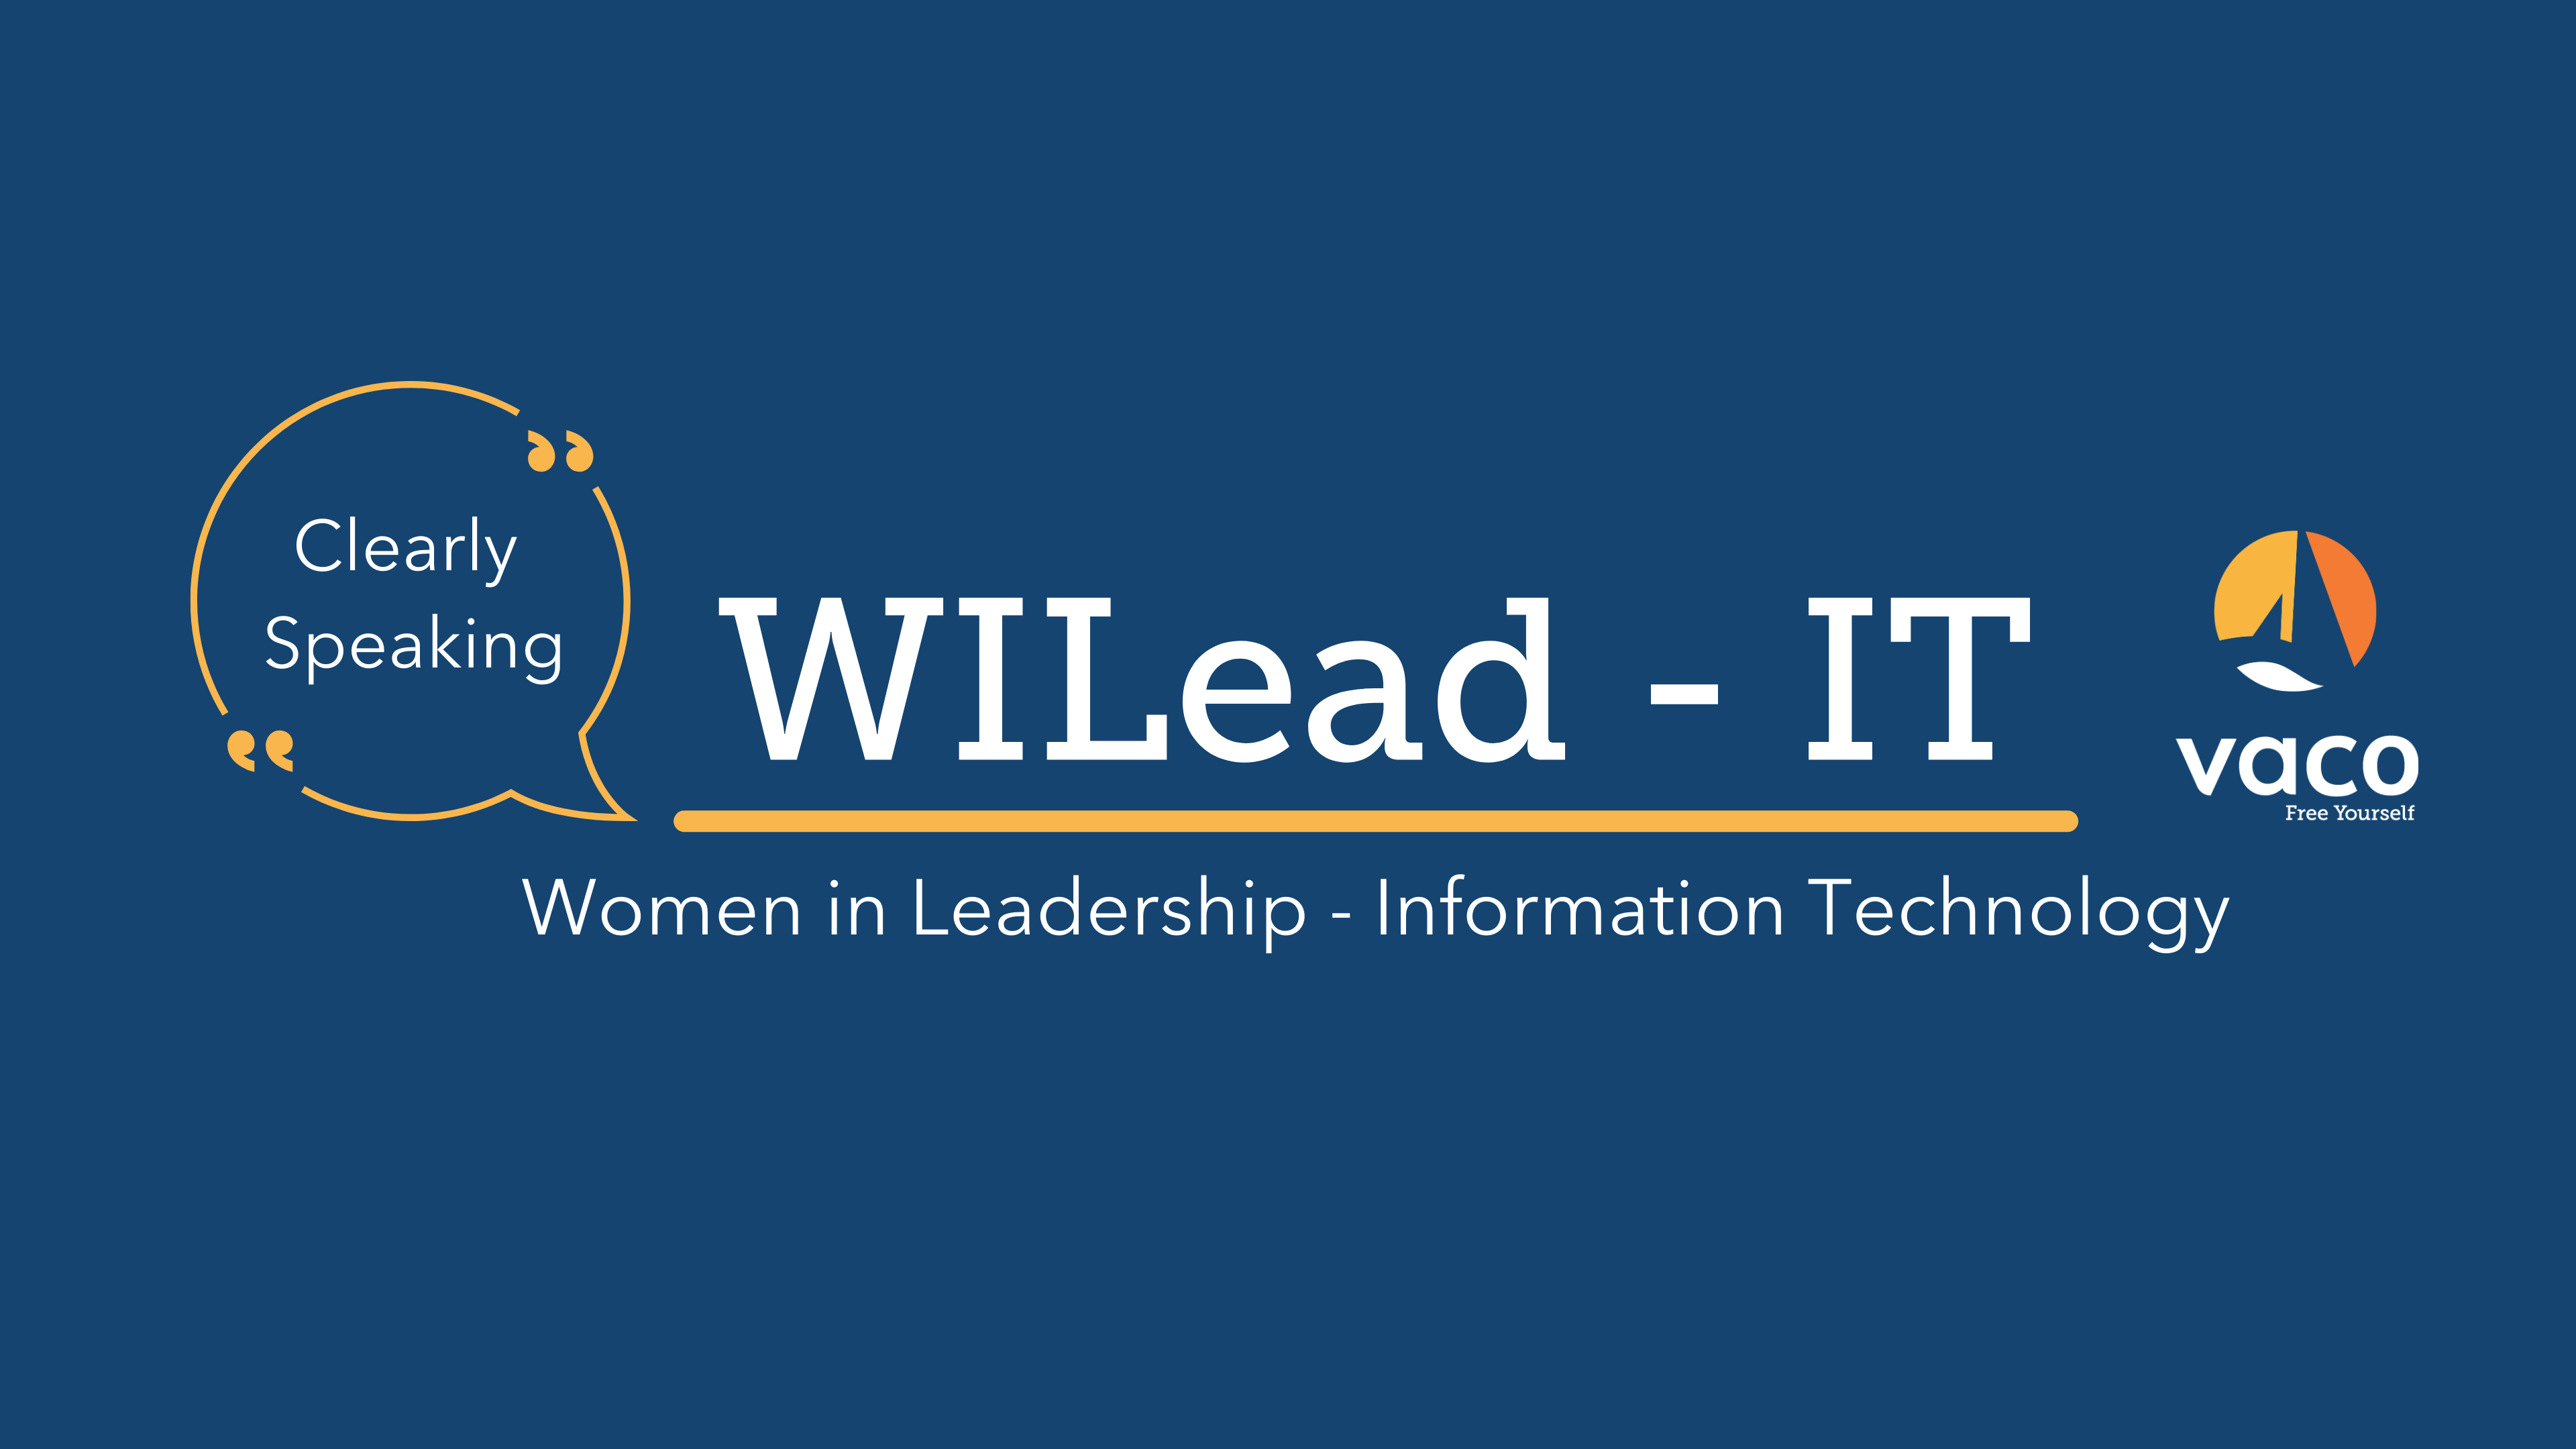 Copy of WI - Lead - IT - Email Header (1)